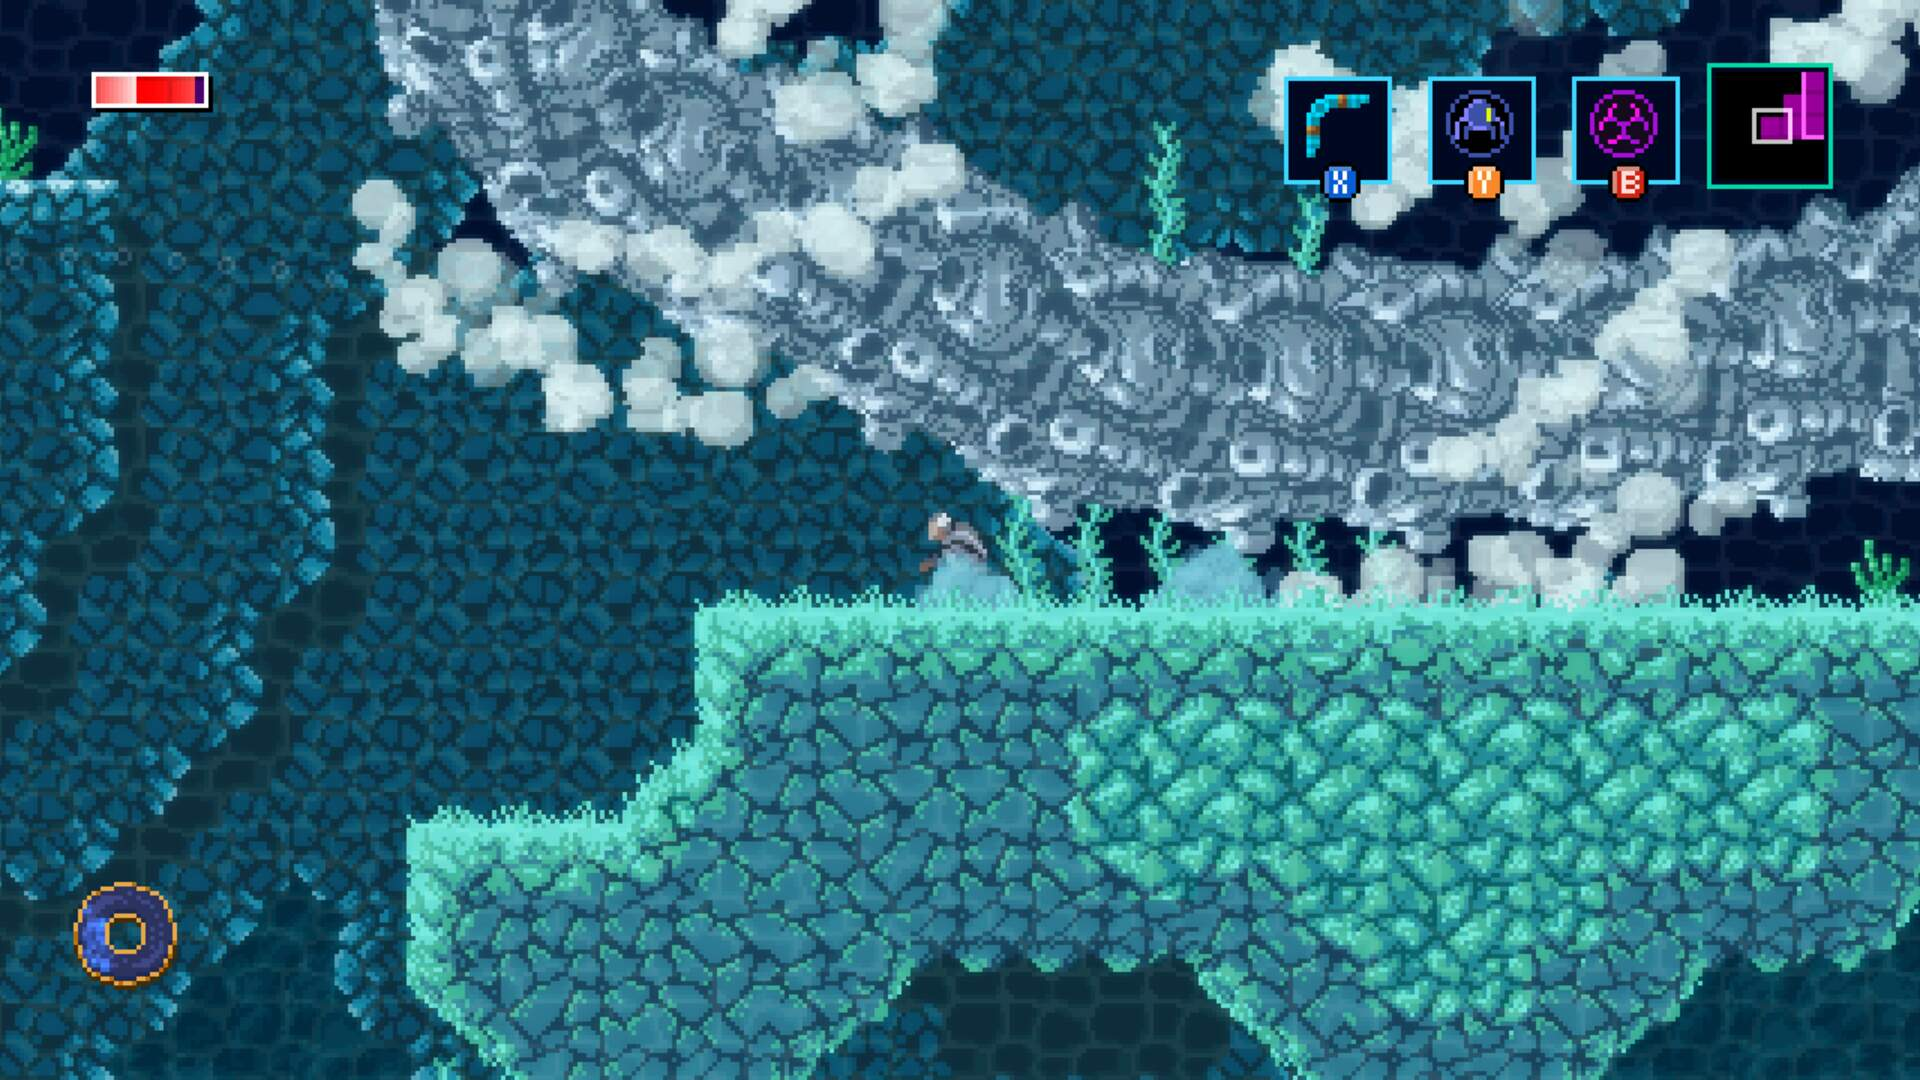 After Four Years of Development, Here's the First Glimpse of Axiom Verge 2